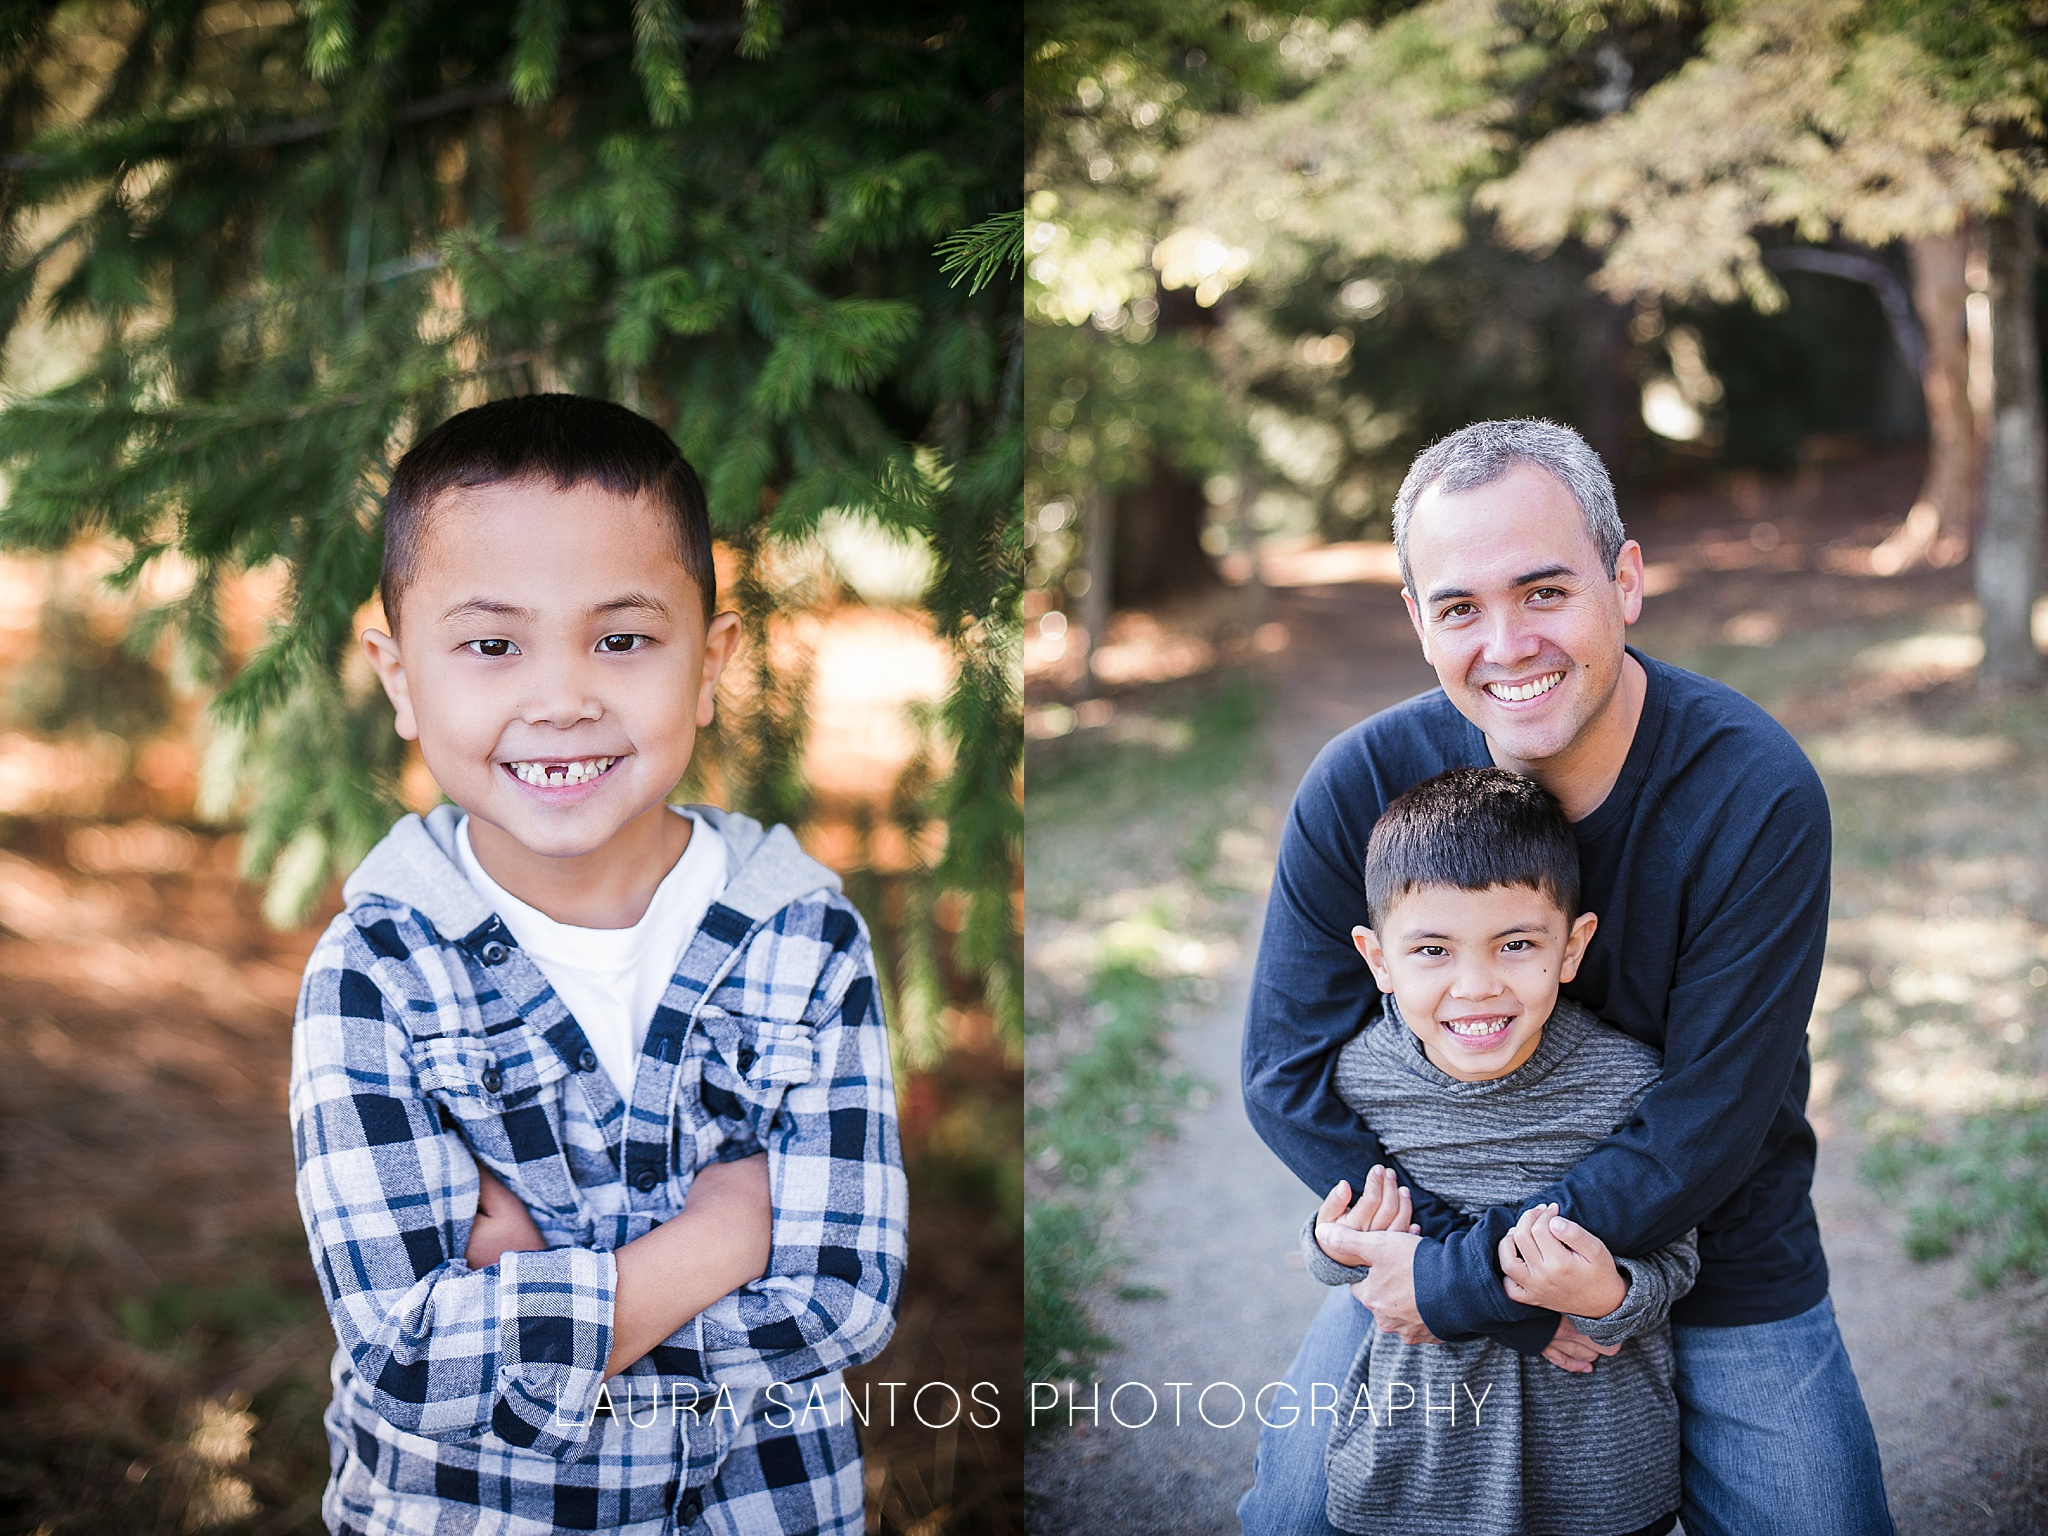 Laura Santos Photography Portland Oregon Family Photographer_0747.jpg